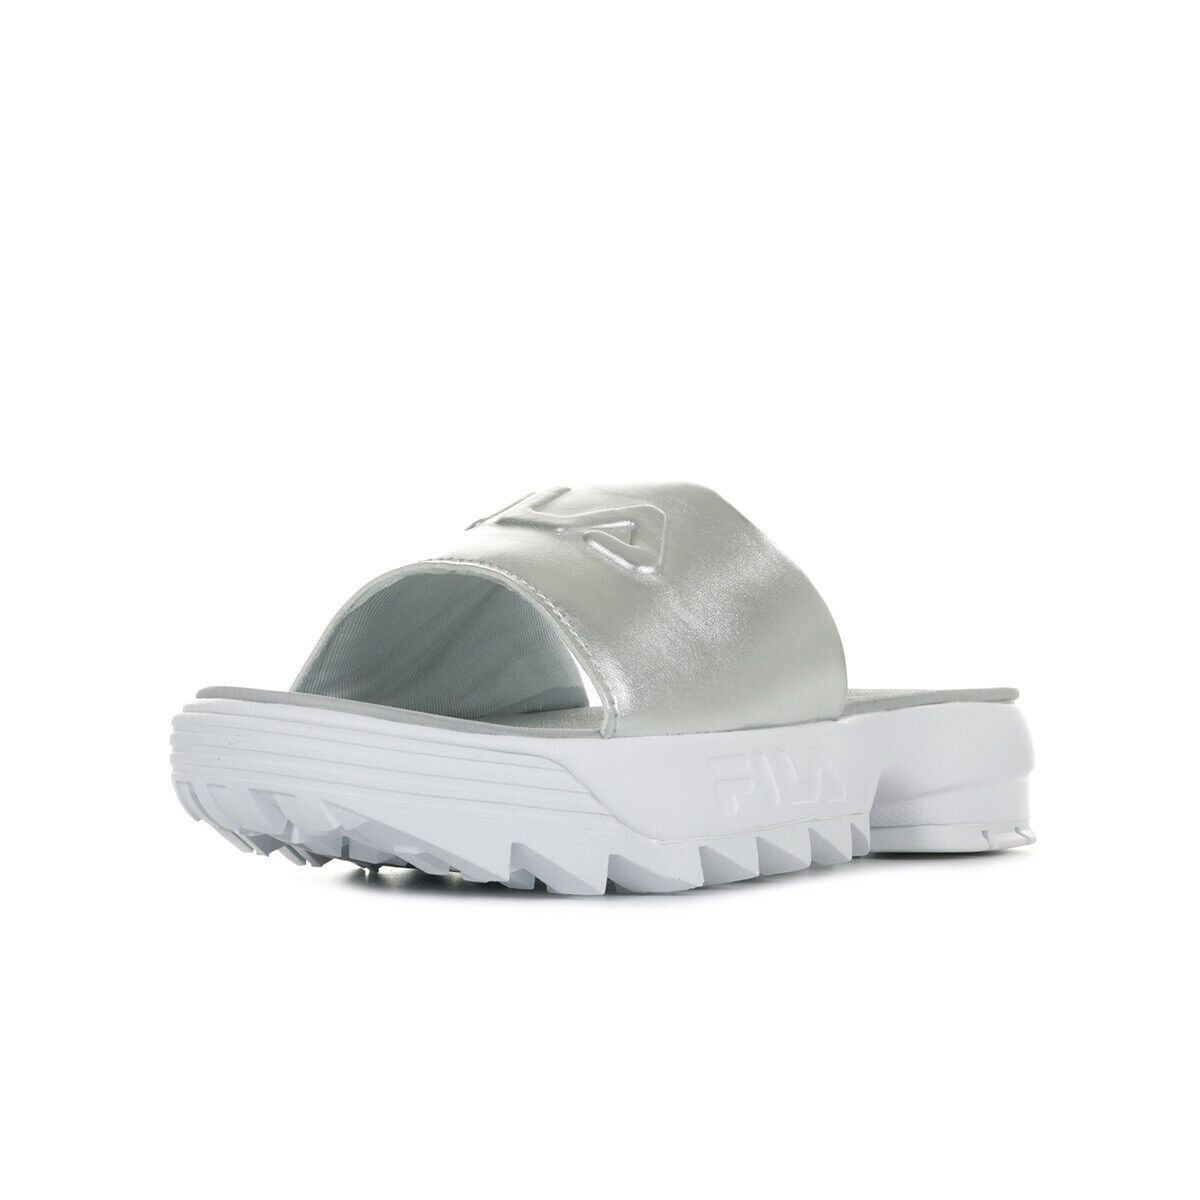 Tap shoes woman fila disruptor slide metallic silver size